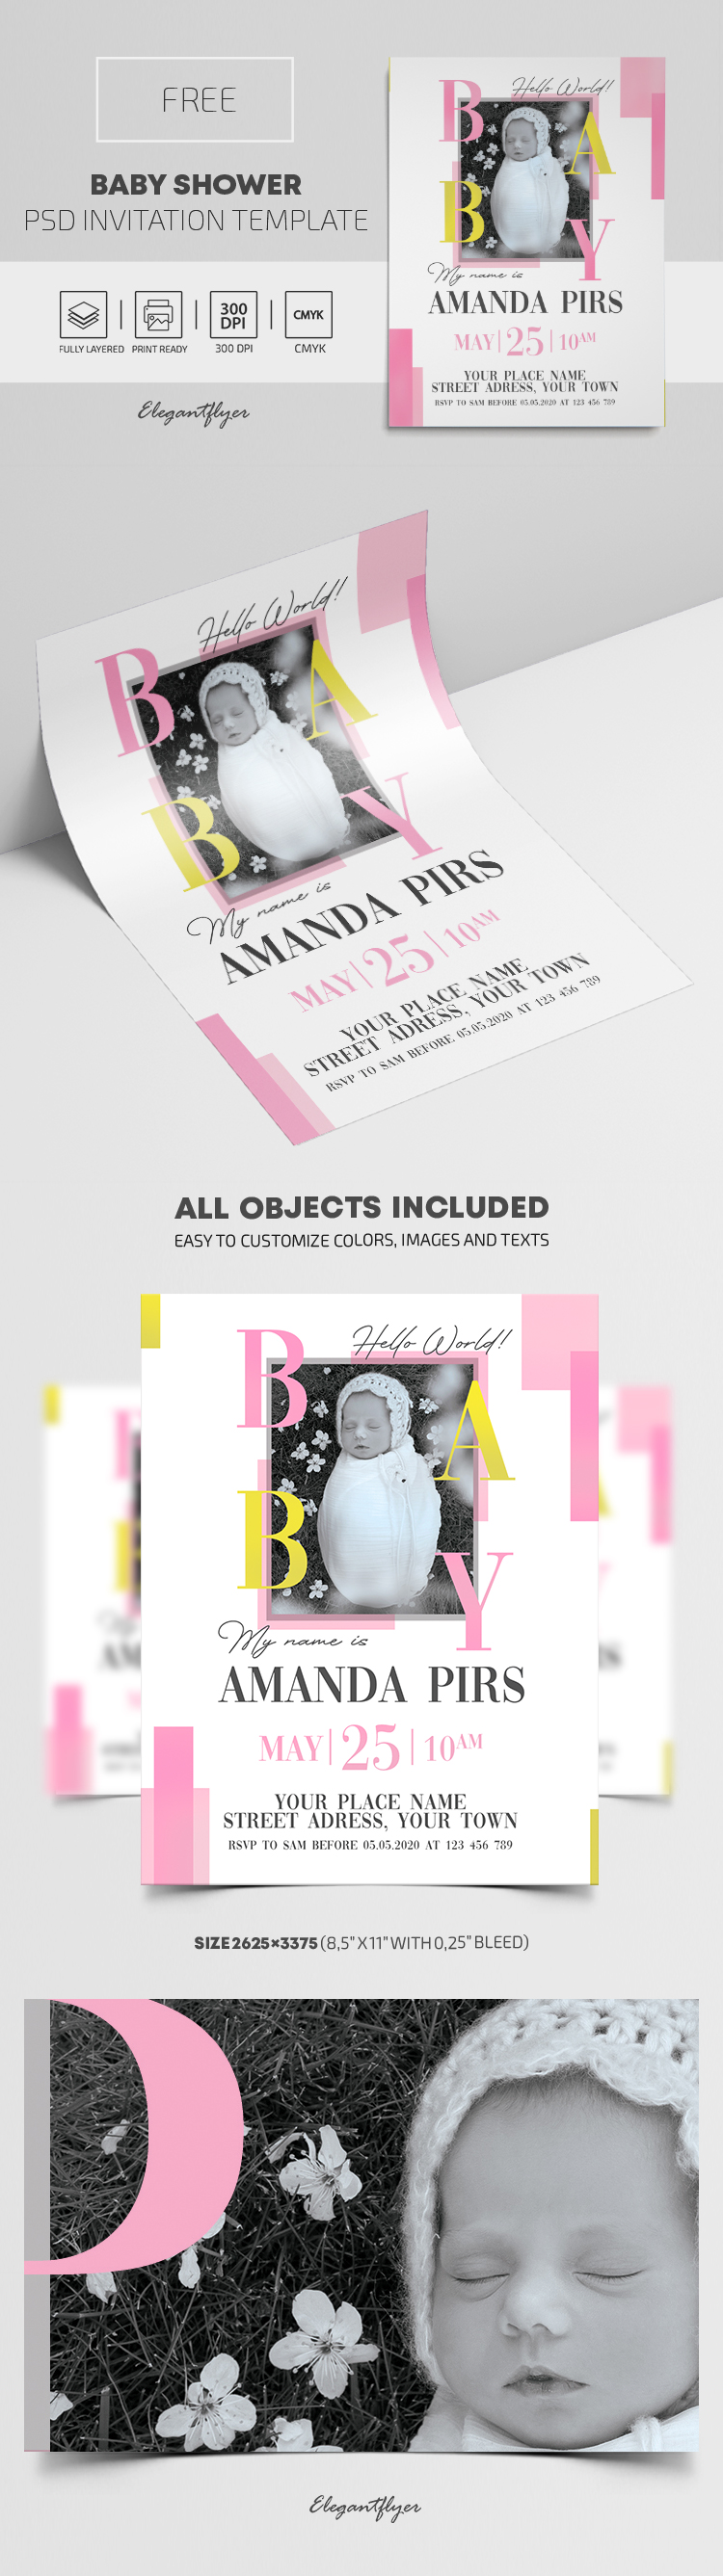 Free Baby Shower Invitation PSD Template